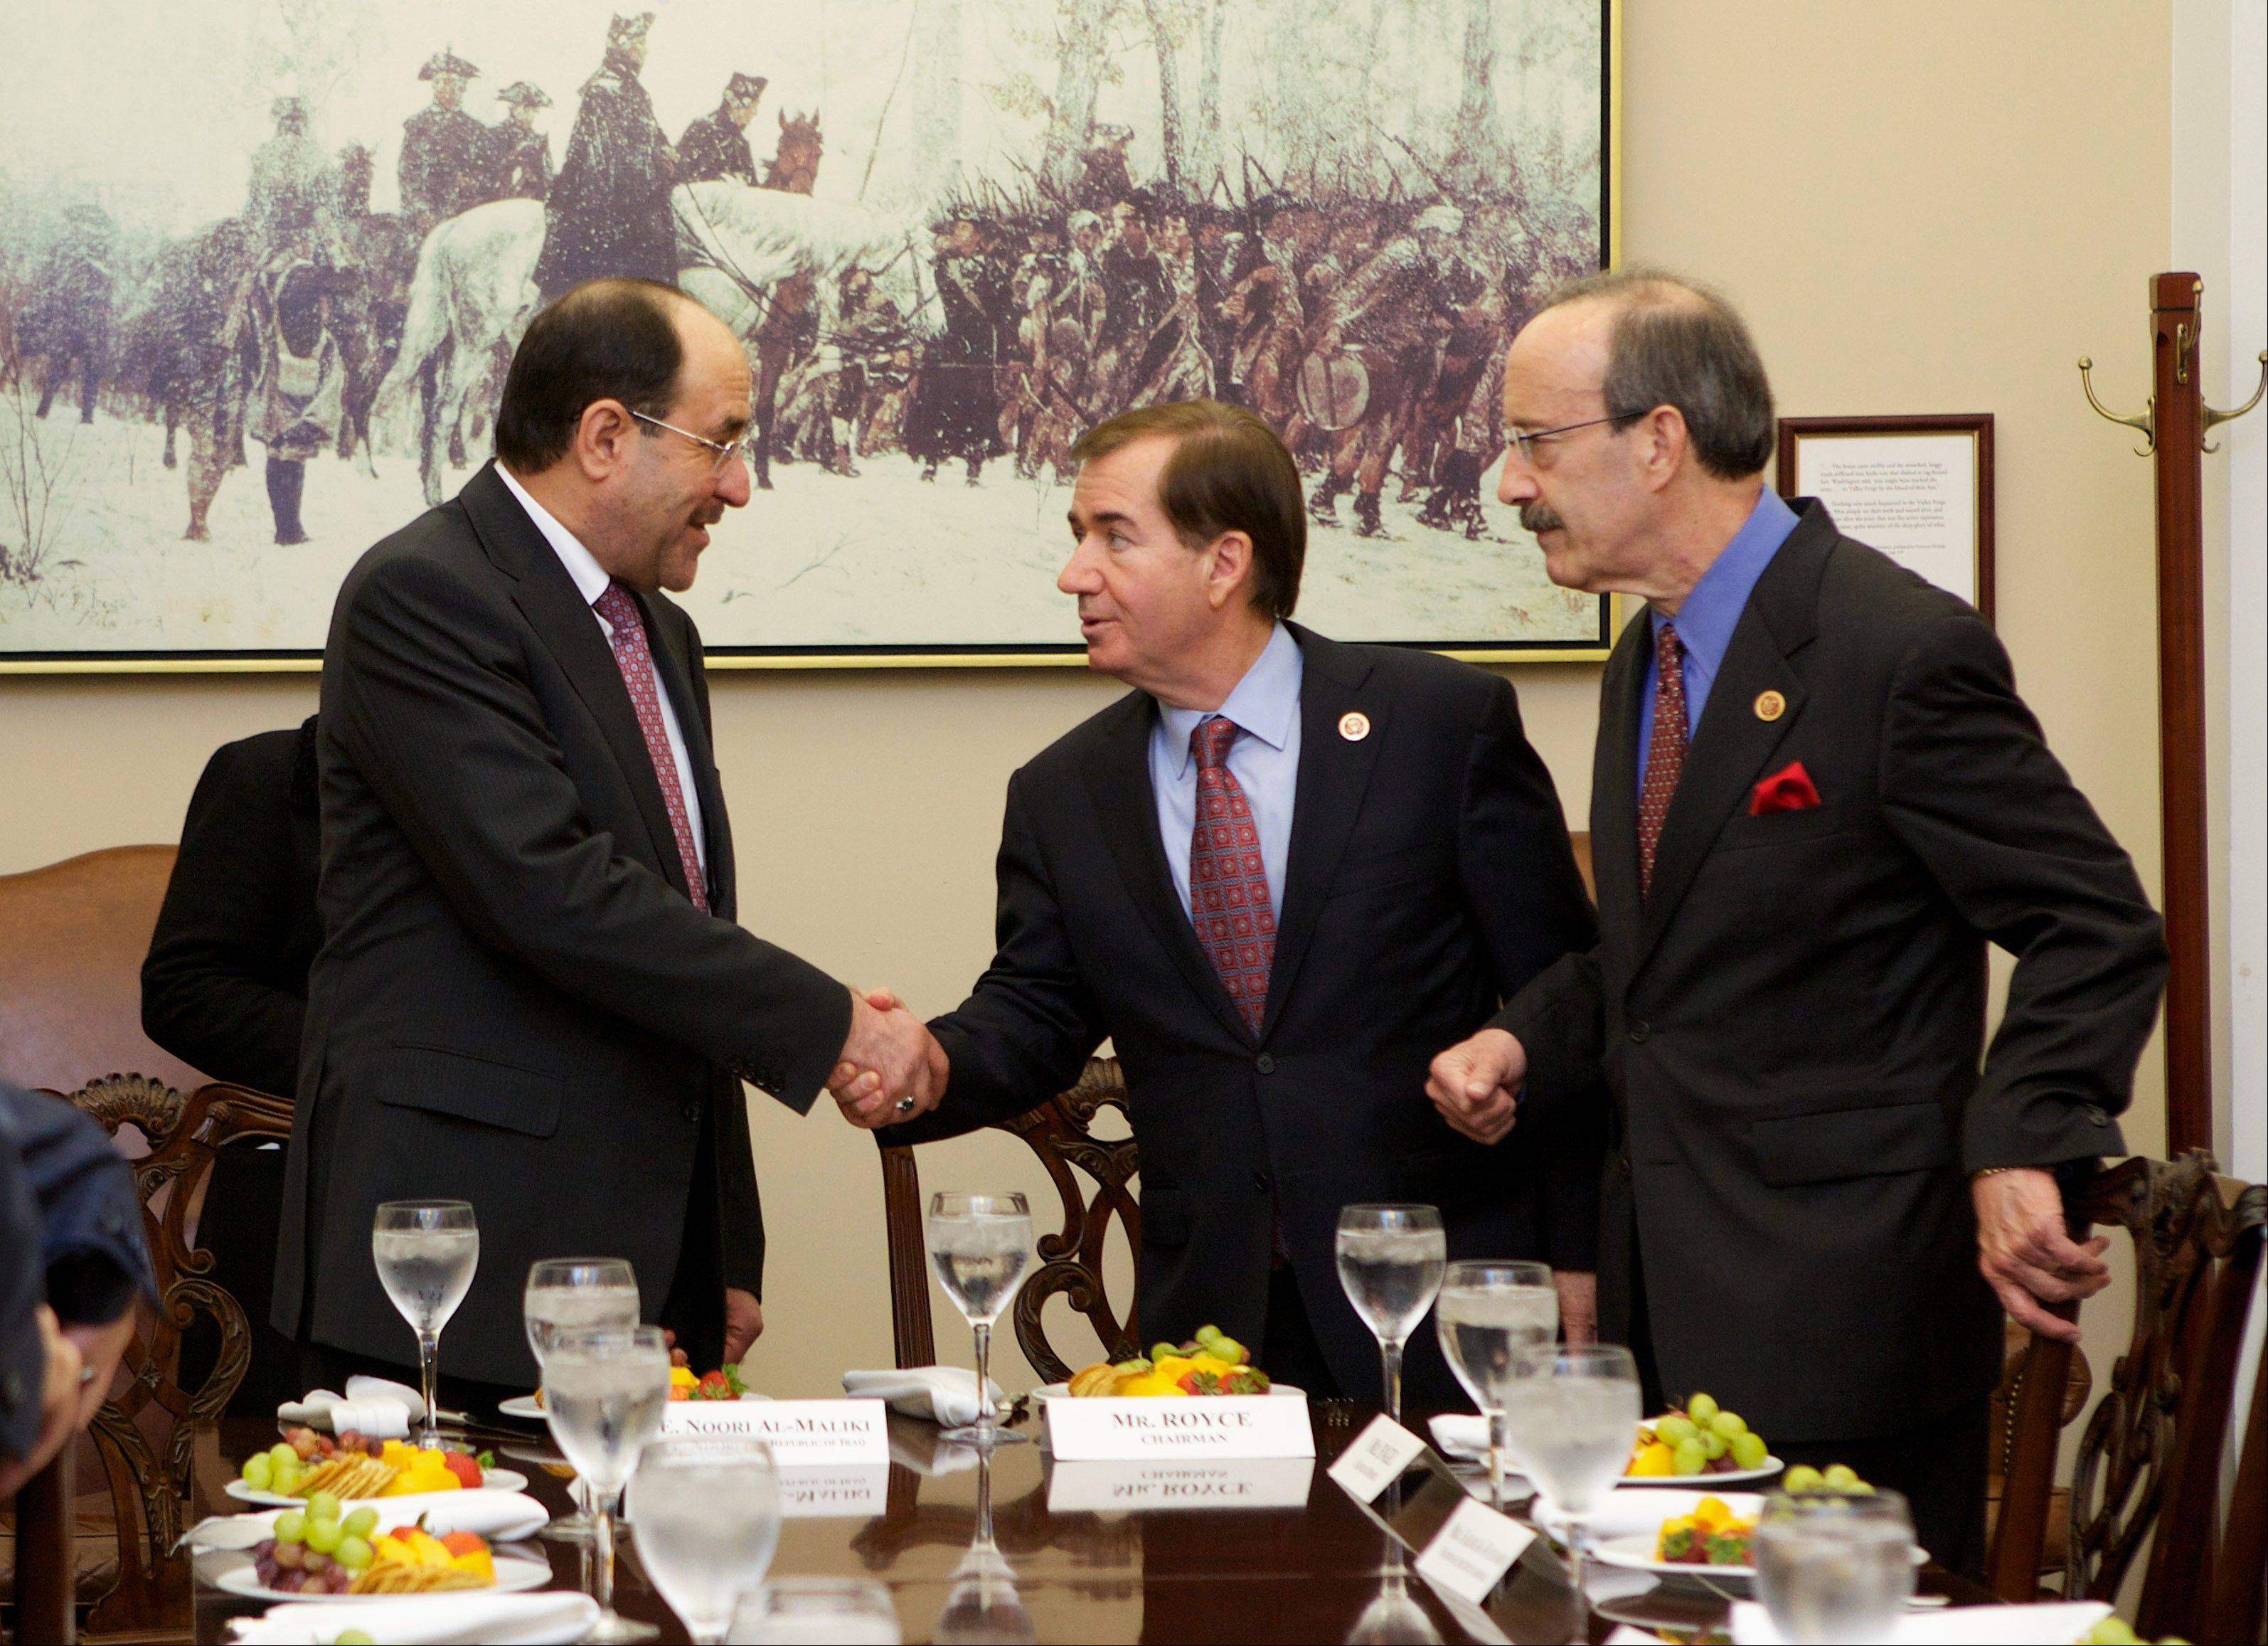 Iraq's Prime Minister Nouri al-Maliki, left, is greeted by House Foreign Affairs Committee Chairman Rep. Ed Royce of California, center, and the committee's ranking Democrat, Rep. Eliot Engel of New York, on Capitol Hill Wednesday.